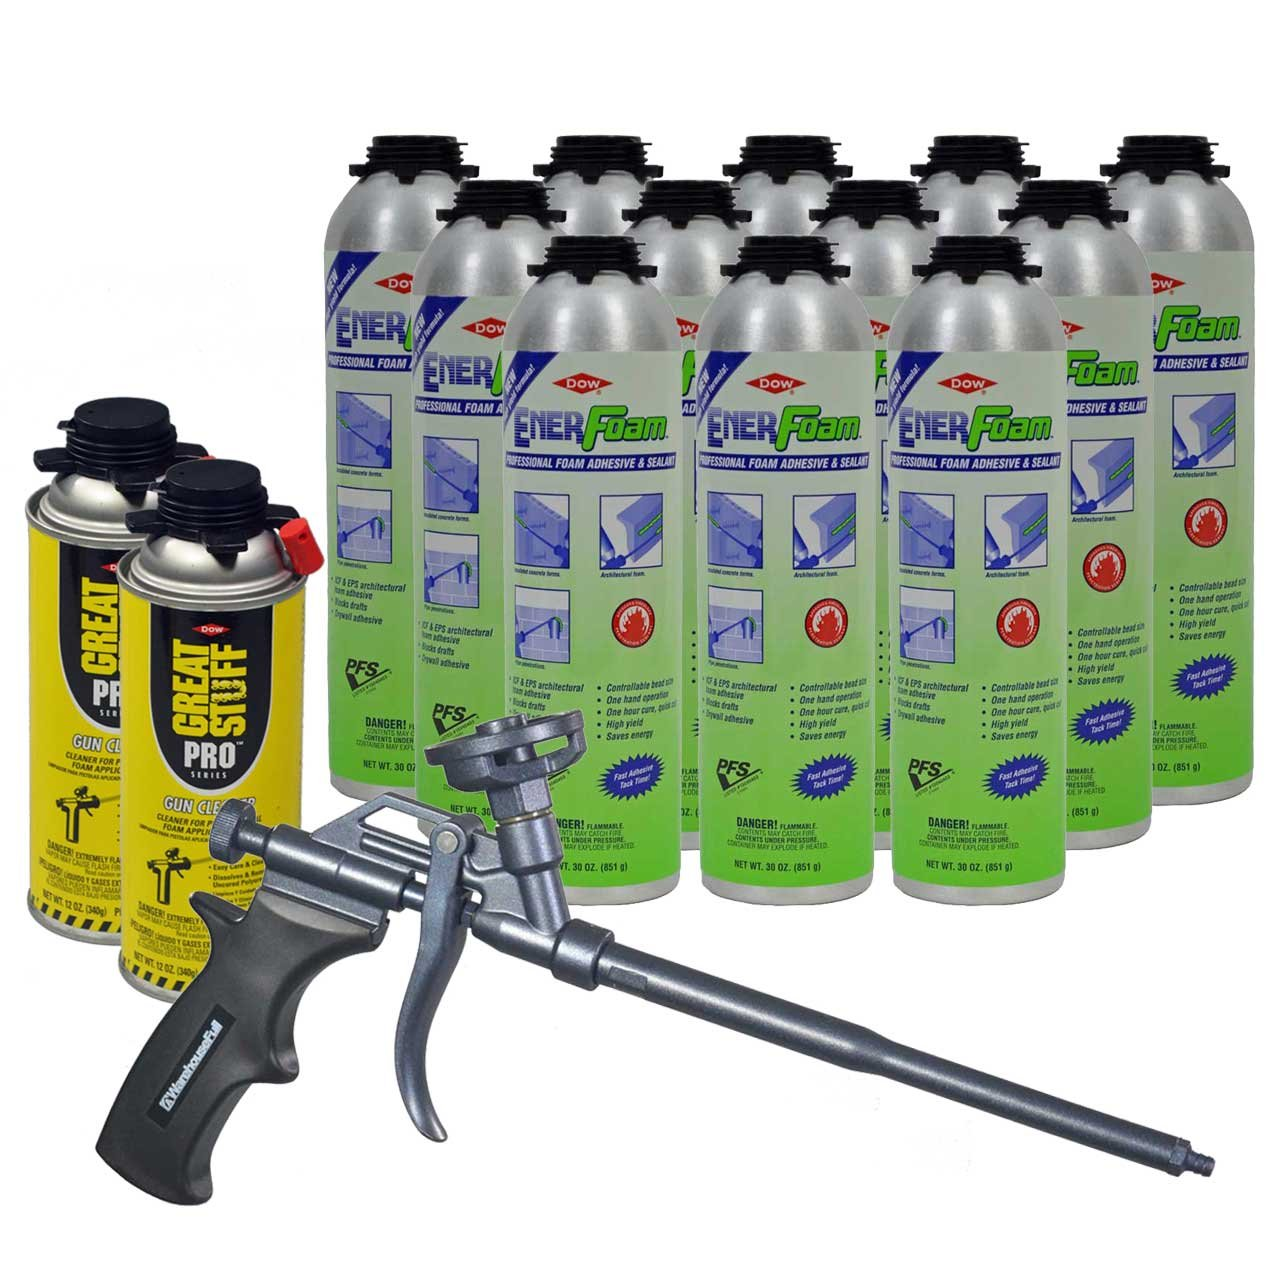 Dow Enerfoam 30oz Gun Dispensed Foam (12) + AWF Teflon Pro Foam Gun (1) + Great Stuff Pro foam Gun Cleaner (2) by Great Stuff